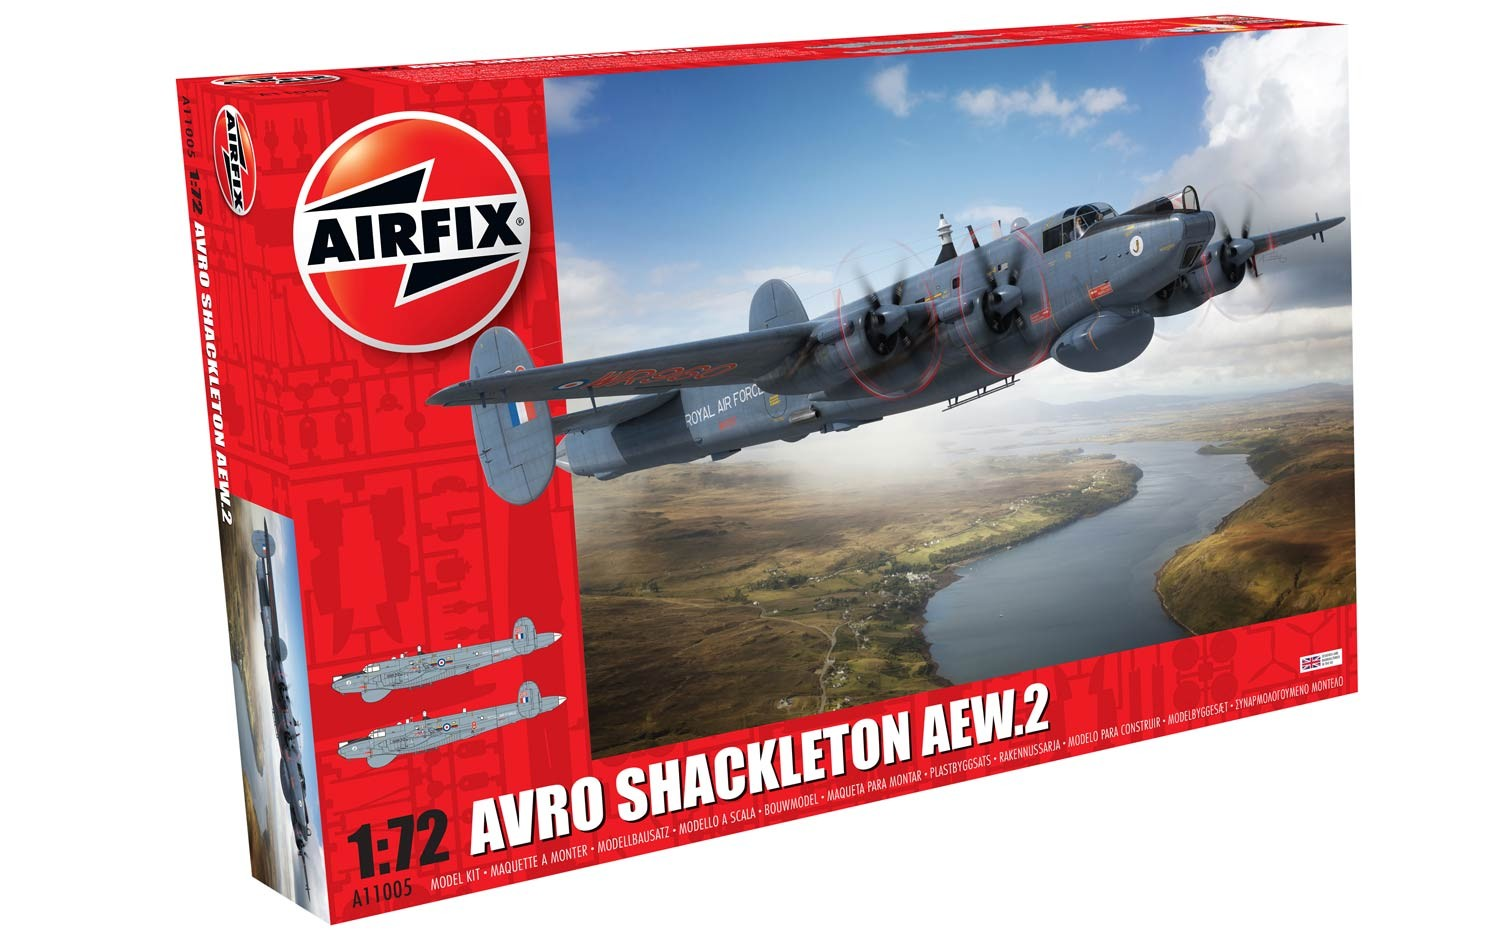 Avro Shackleton AEW.2 (1/72)